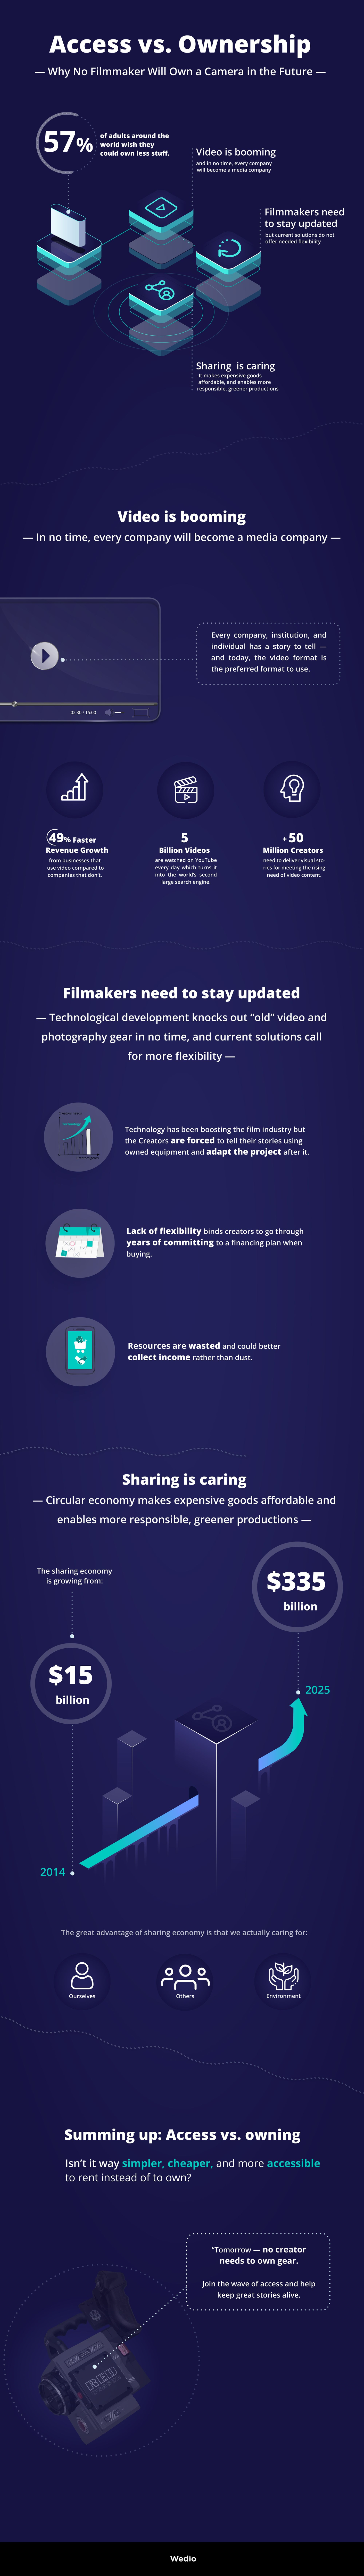 Infographic: Access vs. Ownership — Why No Filmmaker, Creator or Photographer Will Own a Camera in the Future by Wedio